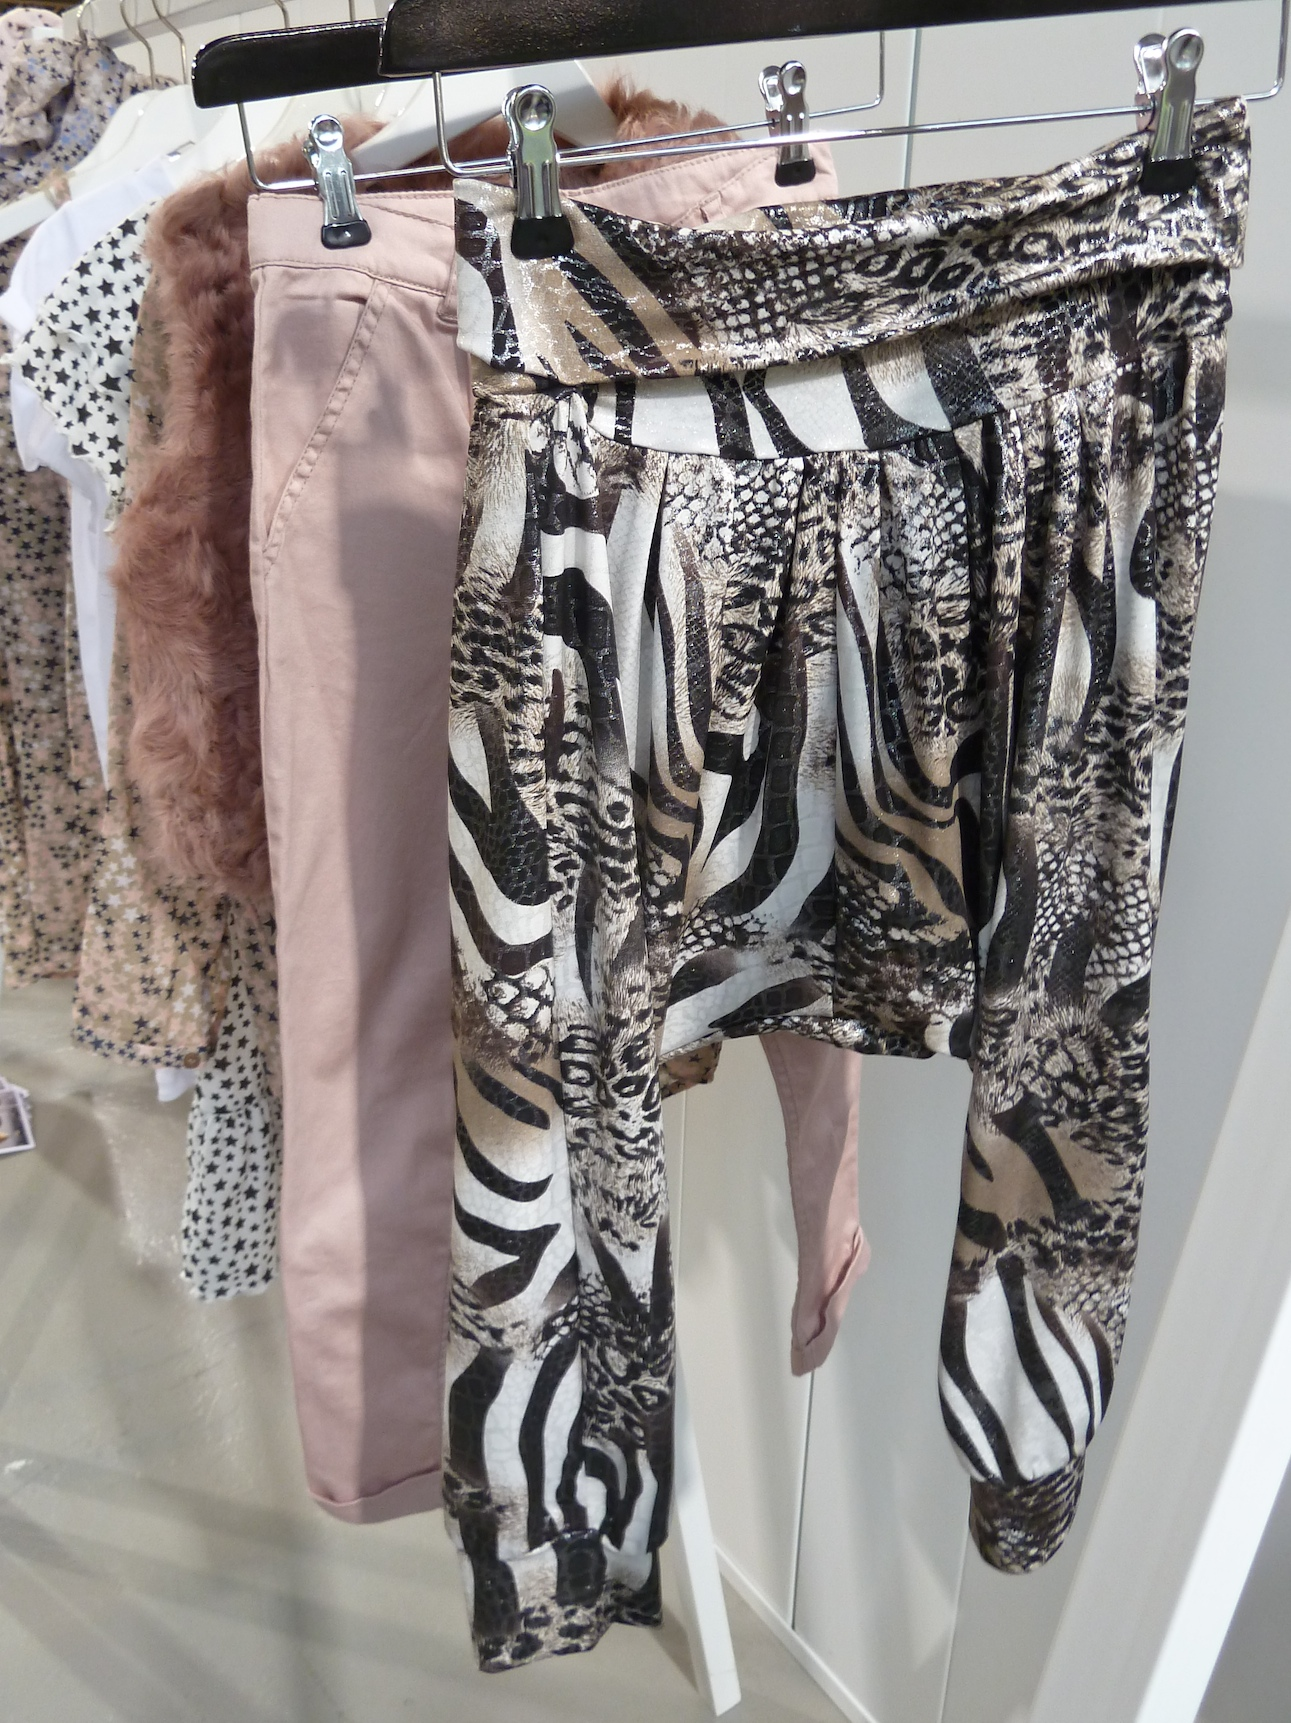 Extraordinary zoave pants from Paper Wings for childrenswear summer 2012 at Ciff Kids Copenhagen